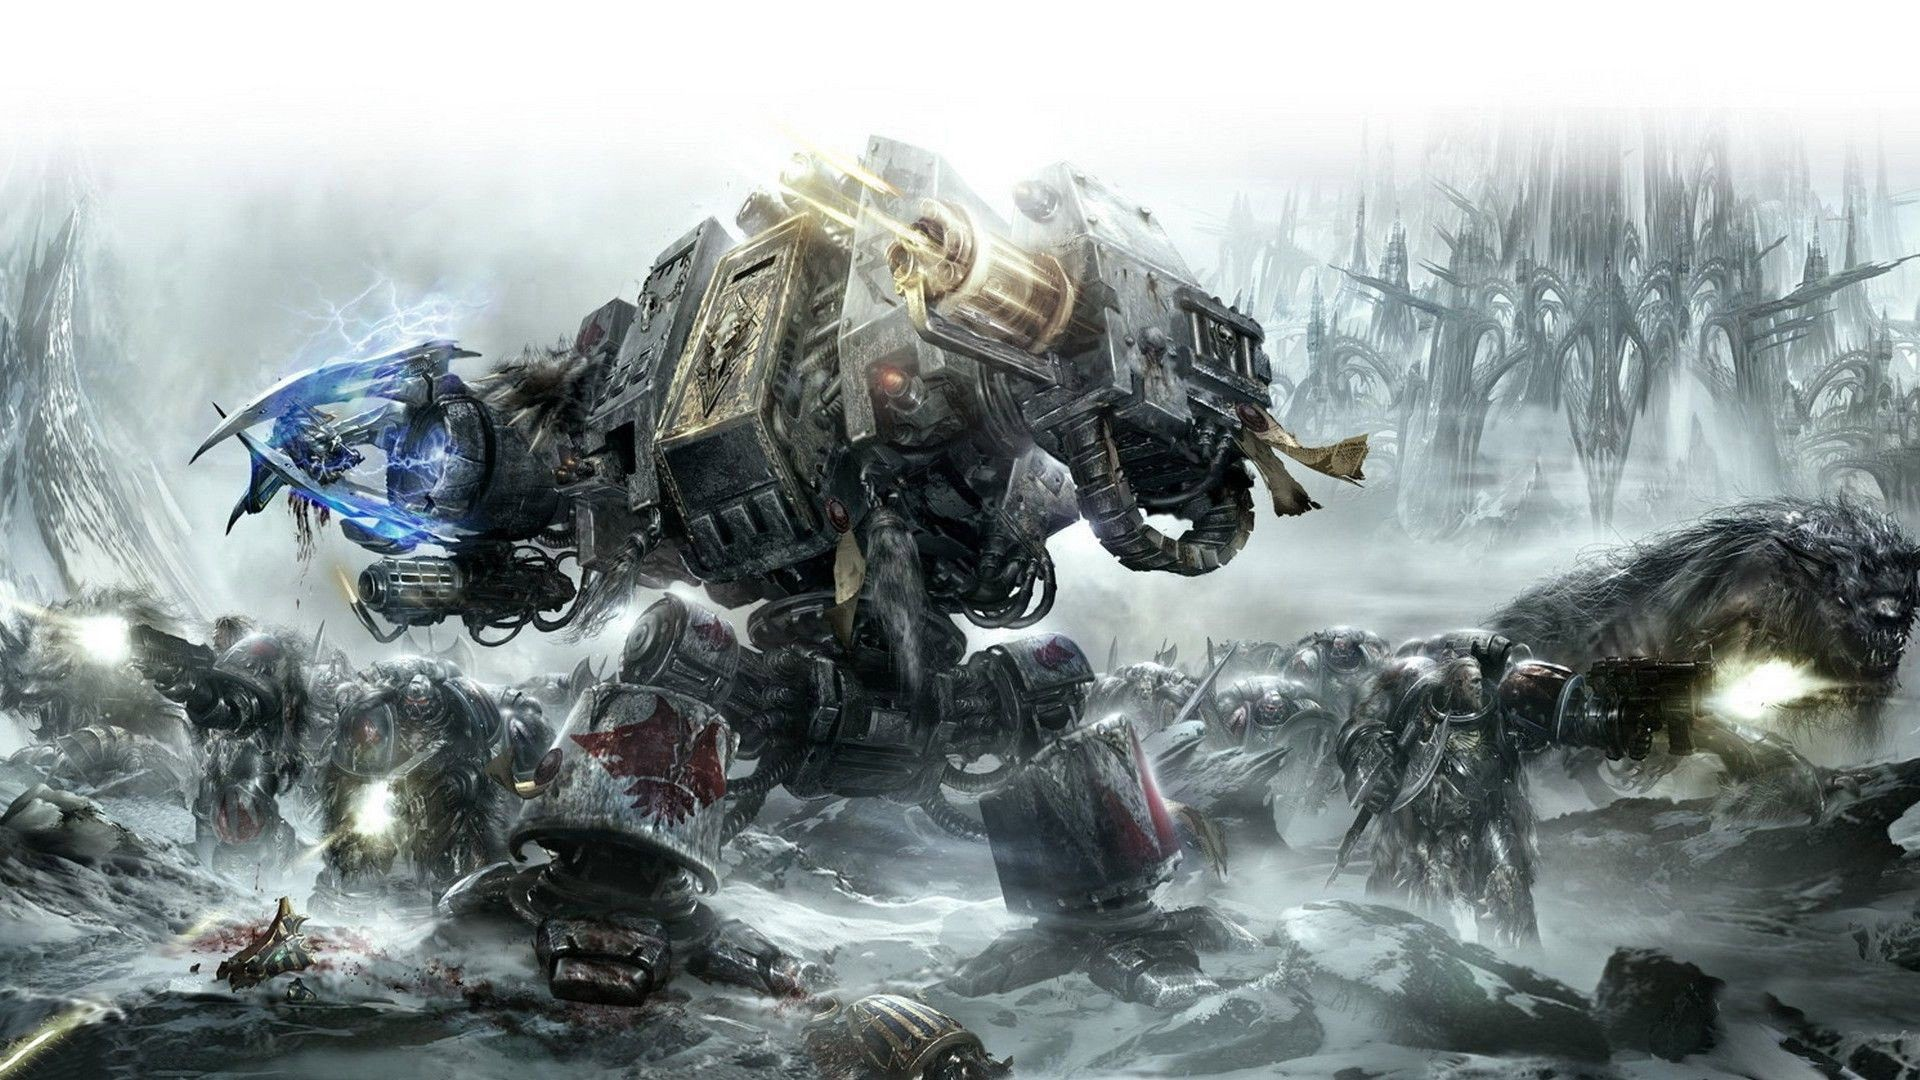 1920x1080 Warhammer 40k on Pinterest | Space Marine, Space Wolves and Warhammer .